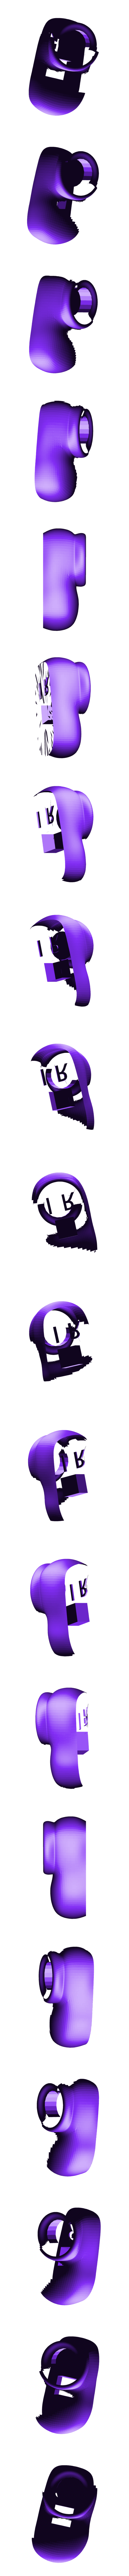 purple_shoe_1_right.stl Download free STL file Wiggler from Mario games - multi-color • Template to 3D print, bpitanga